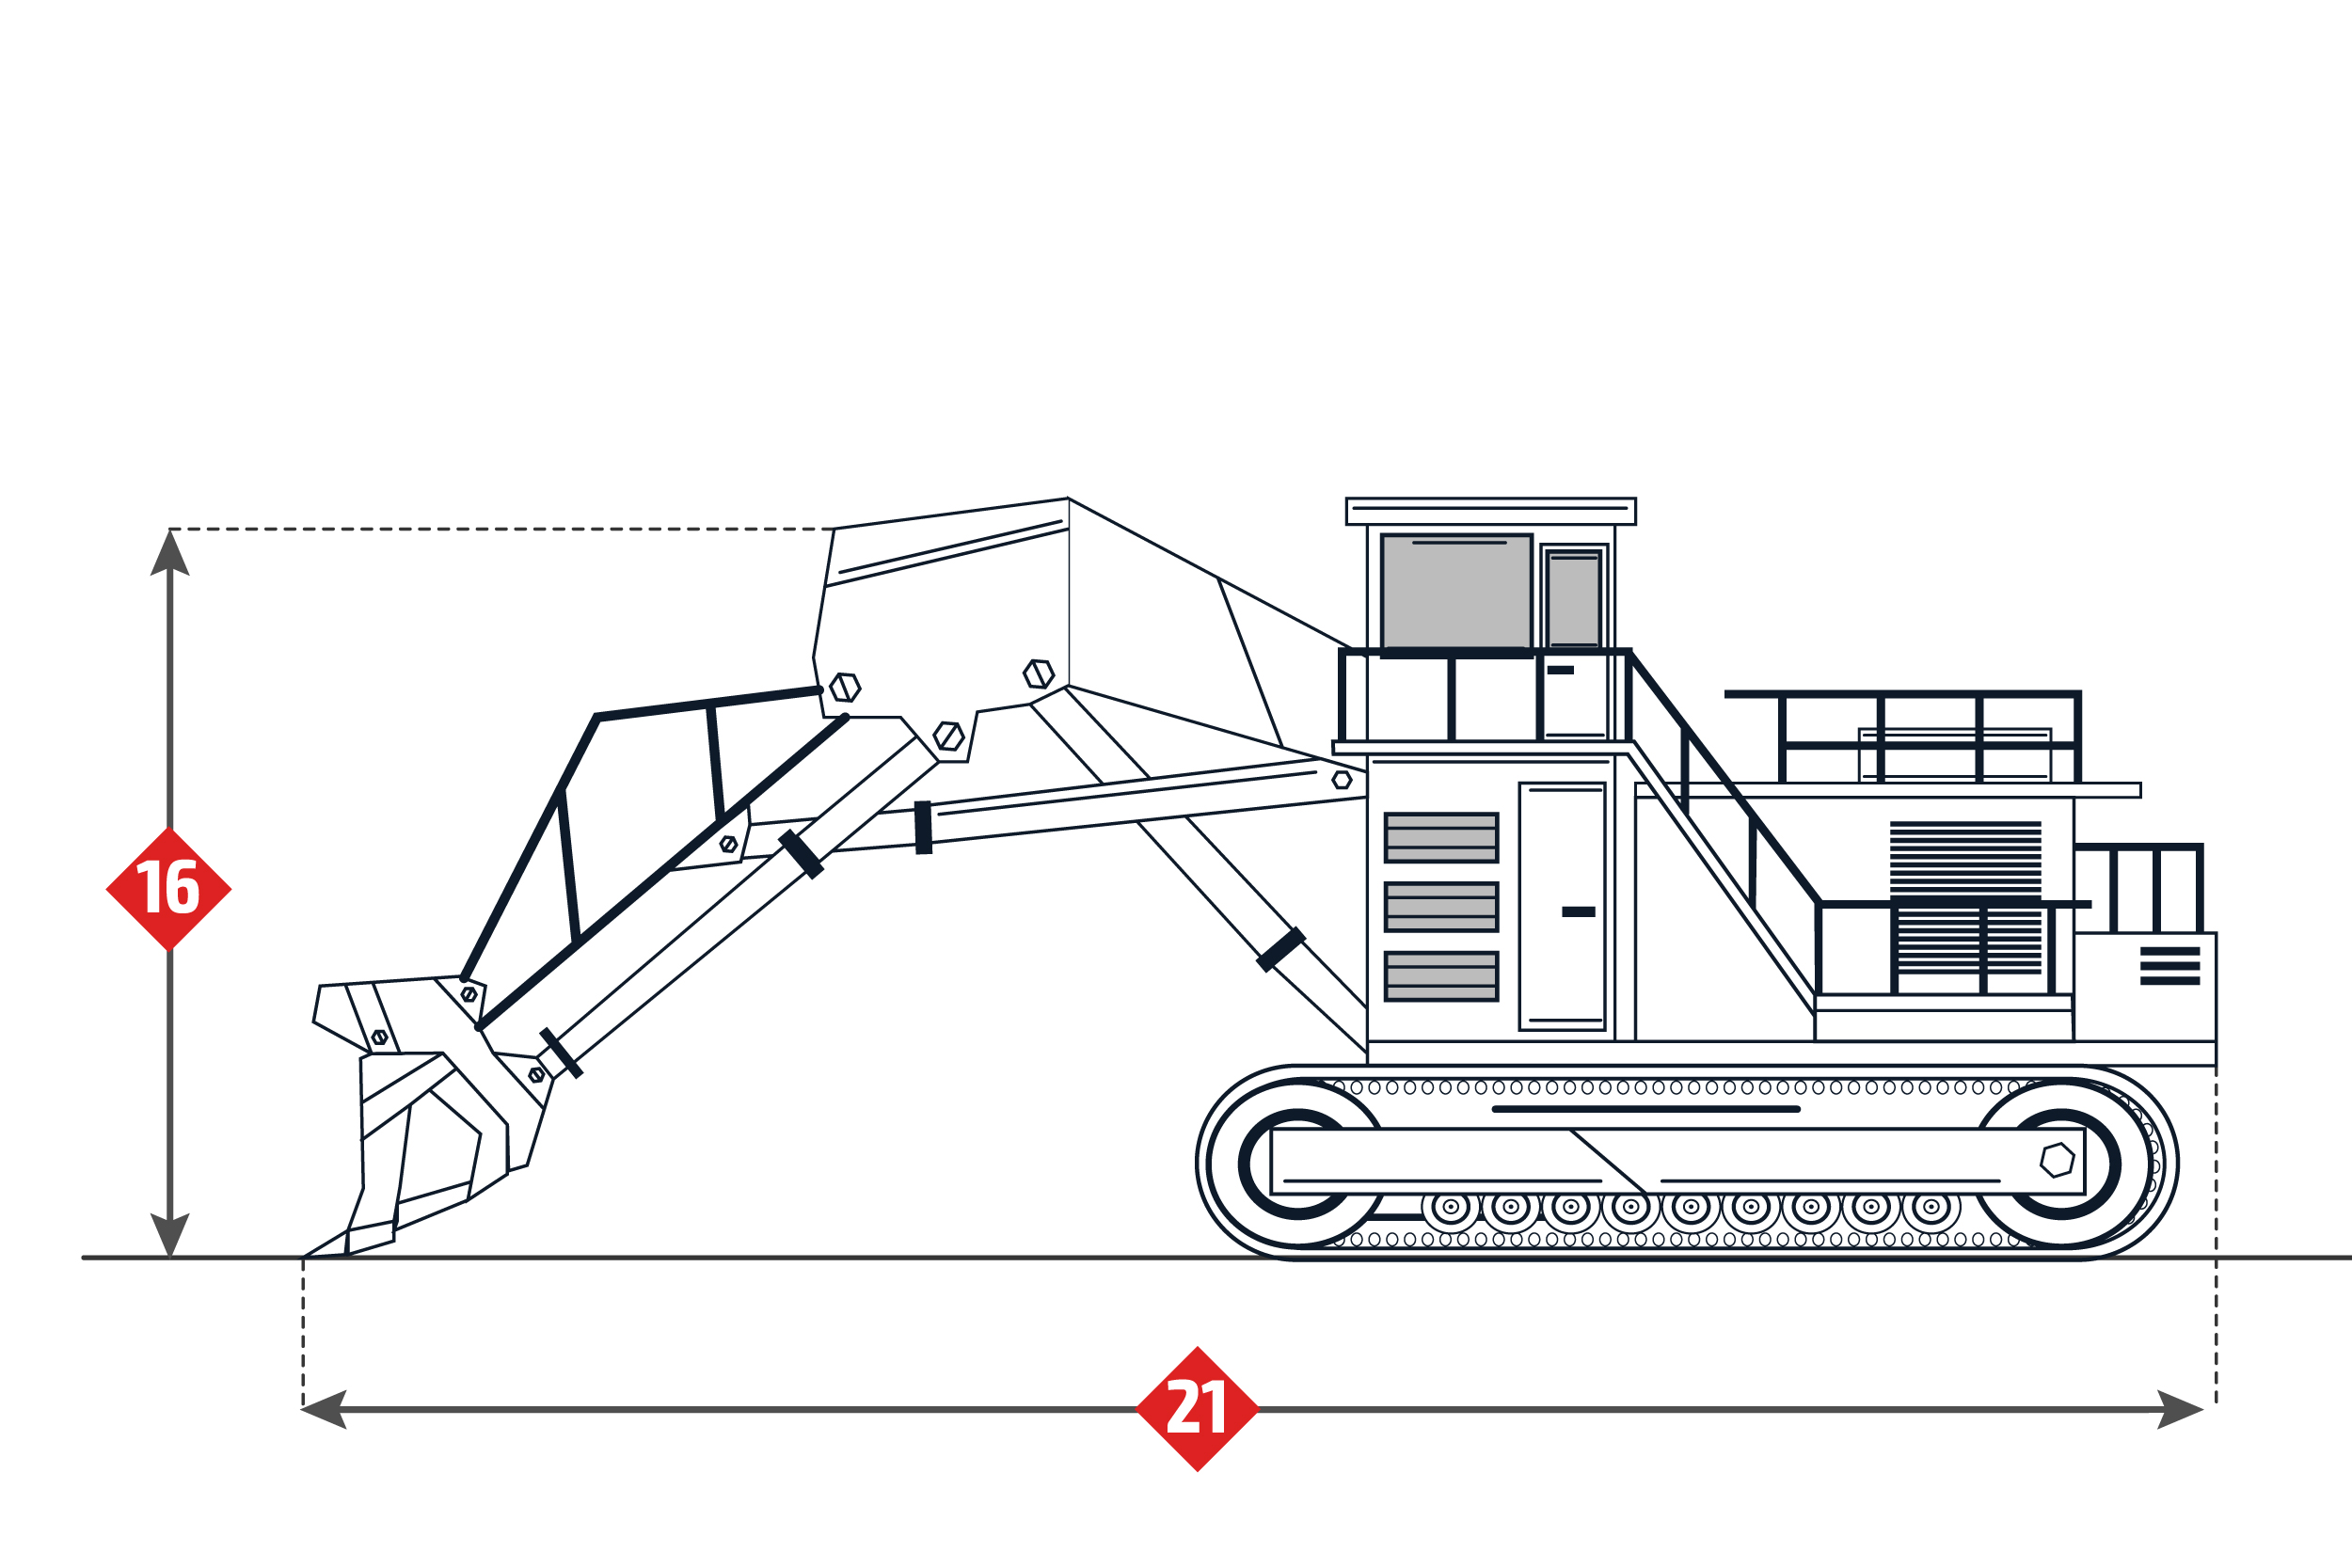 Terex RH340 Specifications. Mining Excavator.